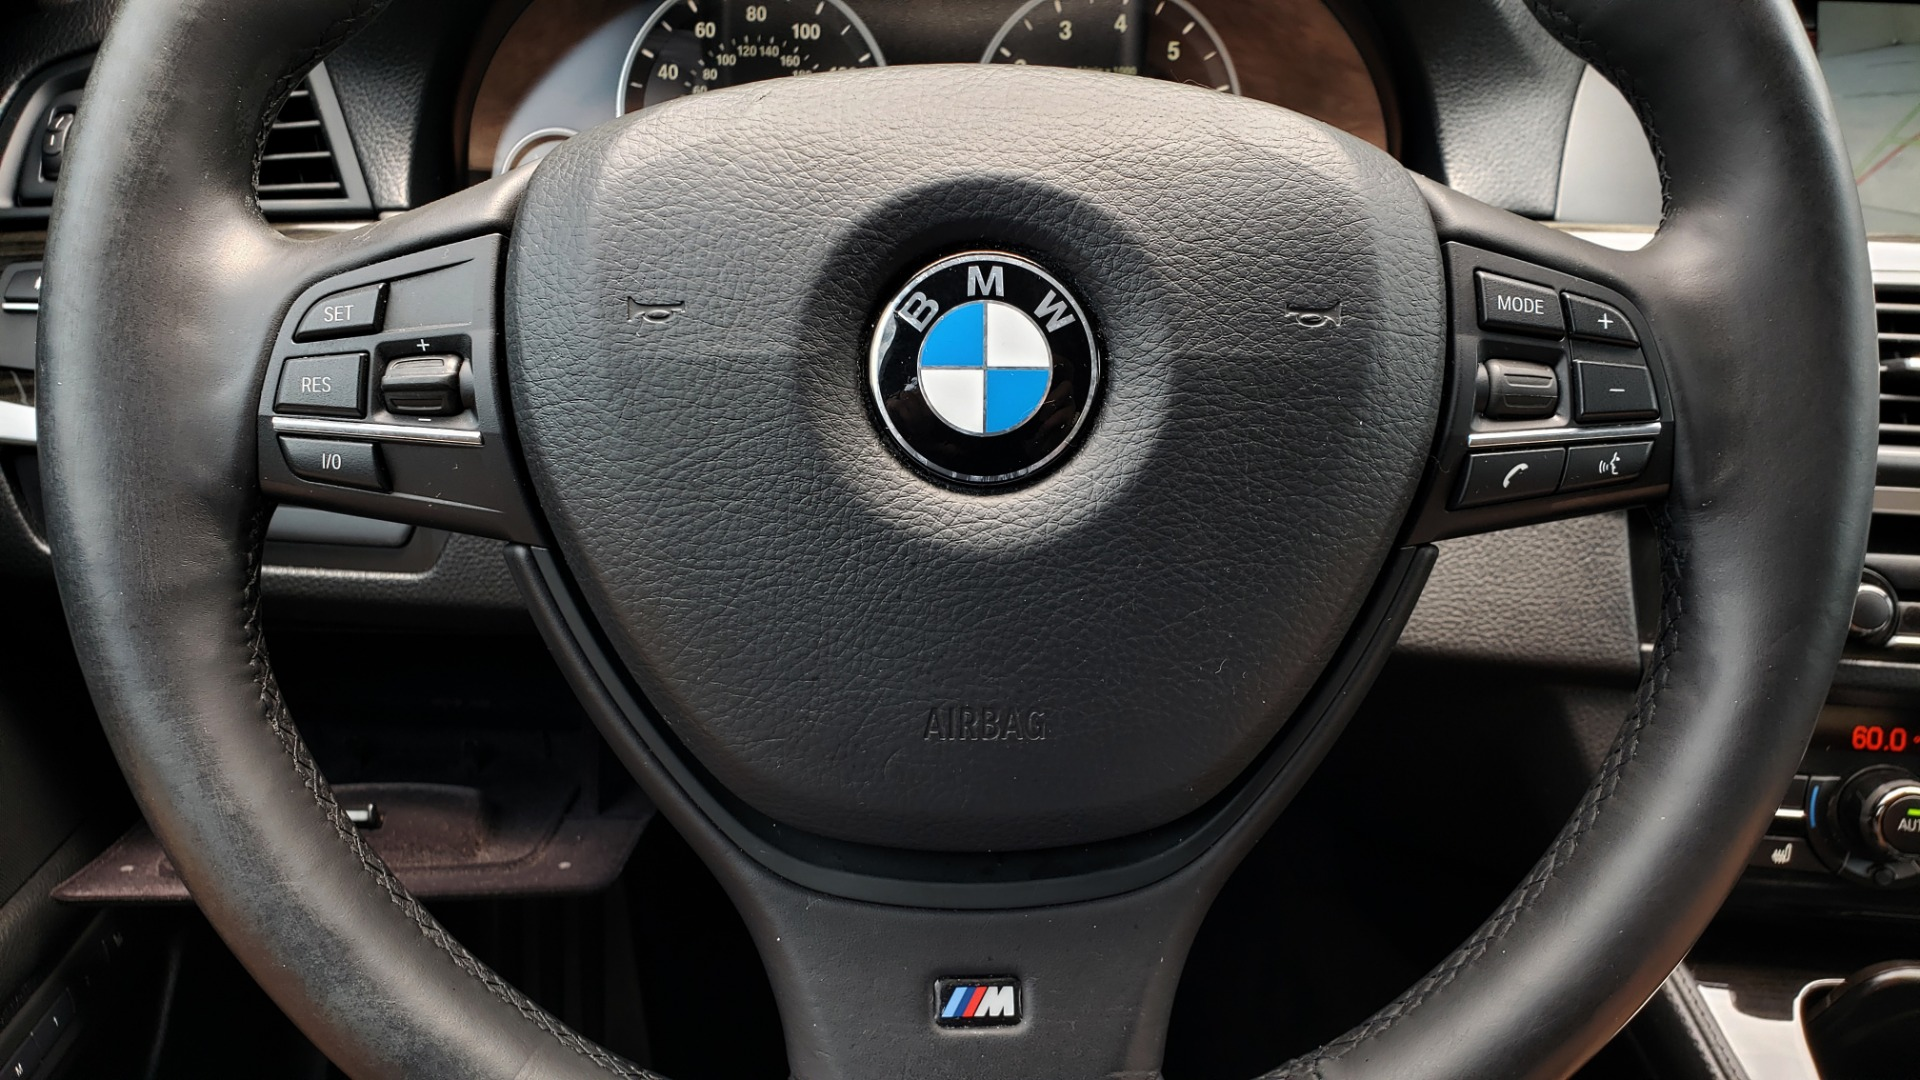 Used 2013 BMW 5 SERIES 550I XDRIVE LUX PKG / EXEC / COLD WTHR / NAV / SUNROOF / REARVIEW for sale $17,995 at Formula Imports in Charlotte NC 28227 32